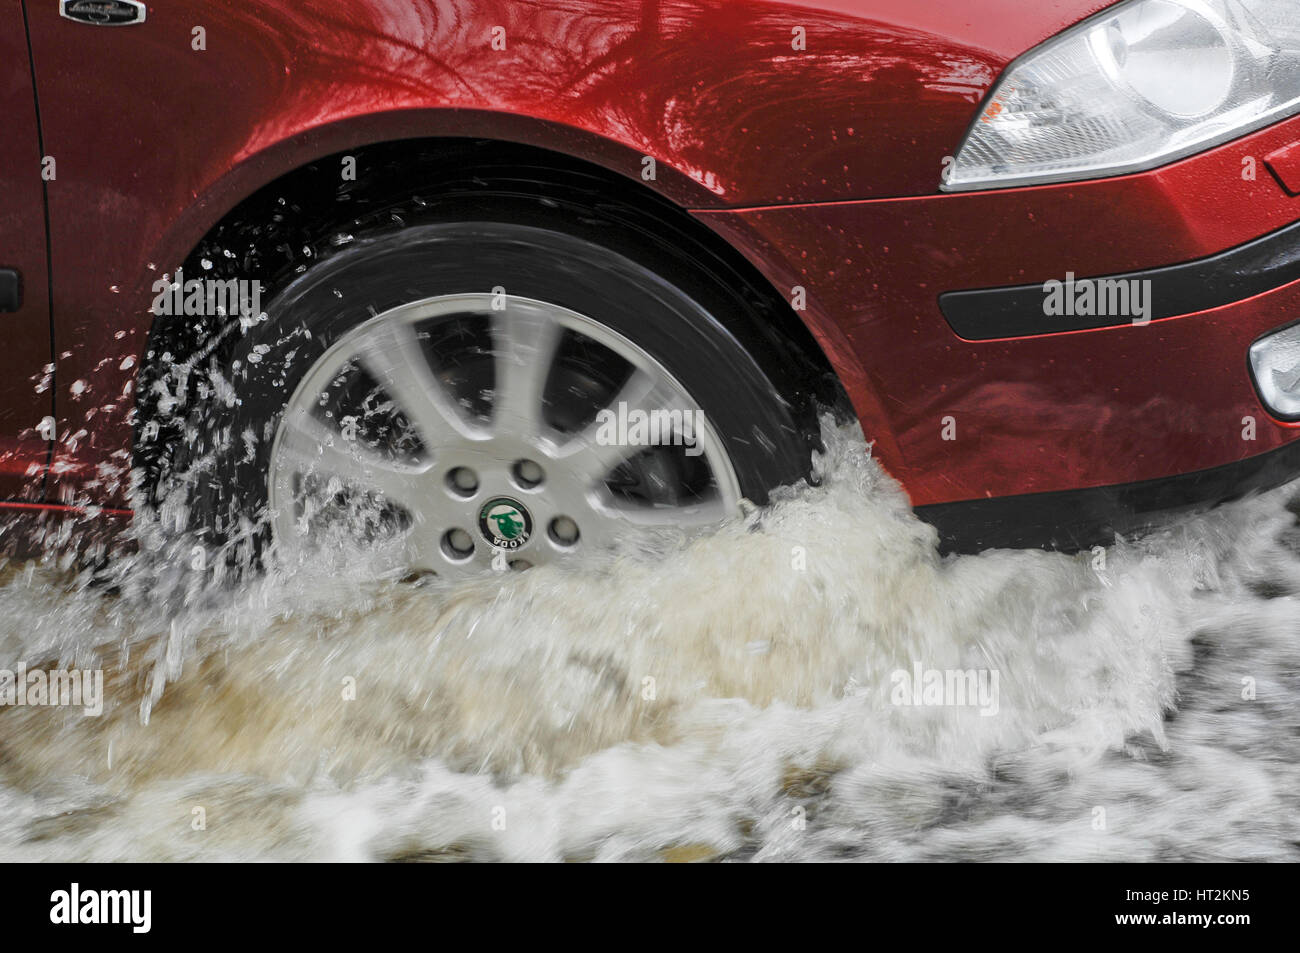 Car driving through flood. Artist: Unknown. - Stock Image